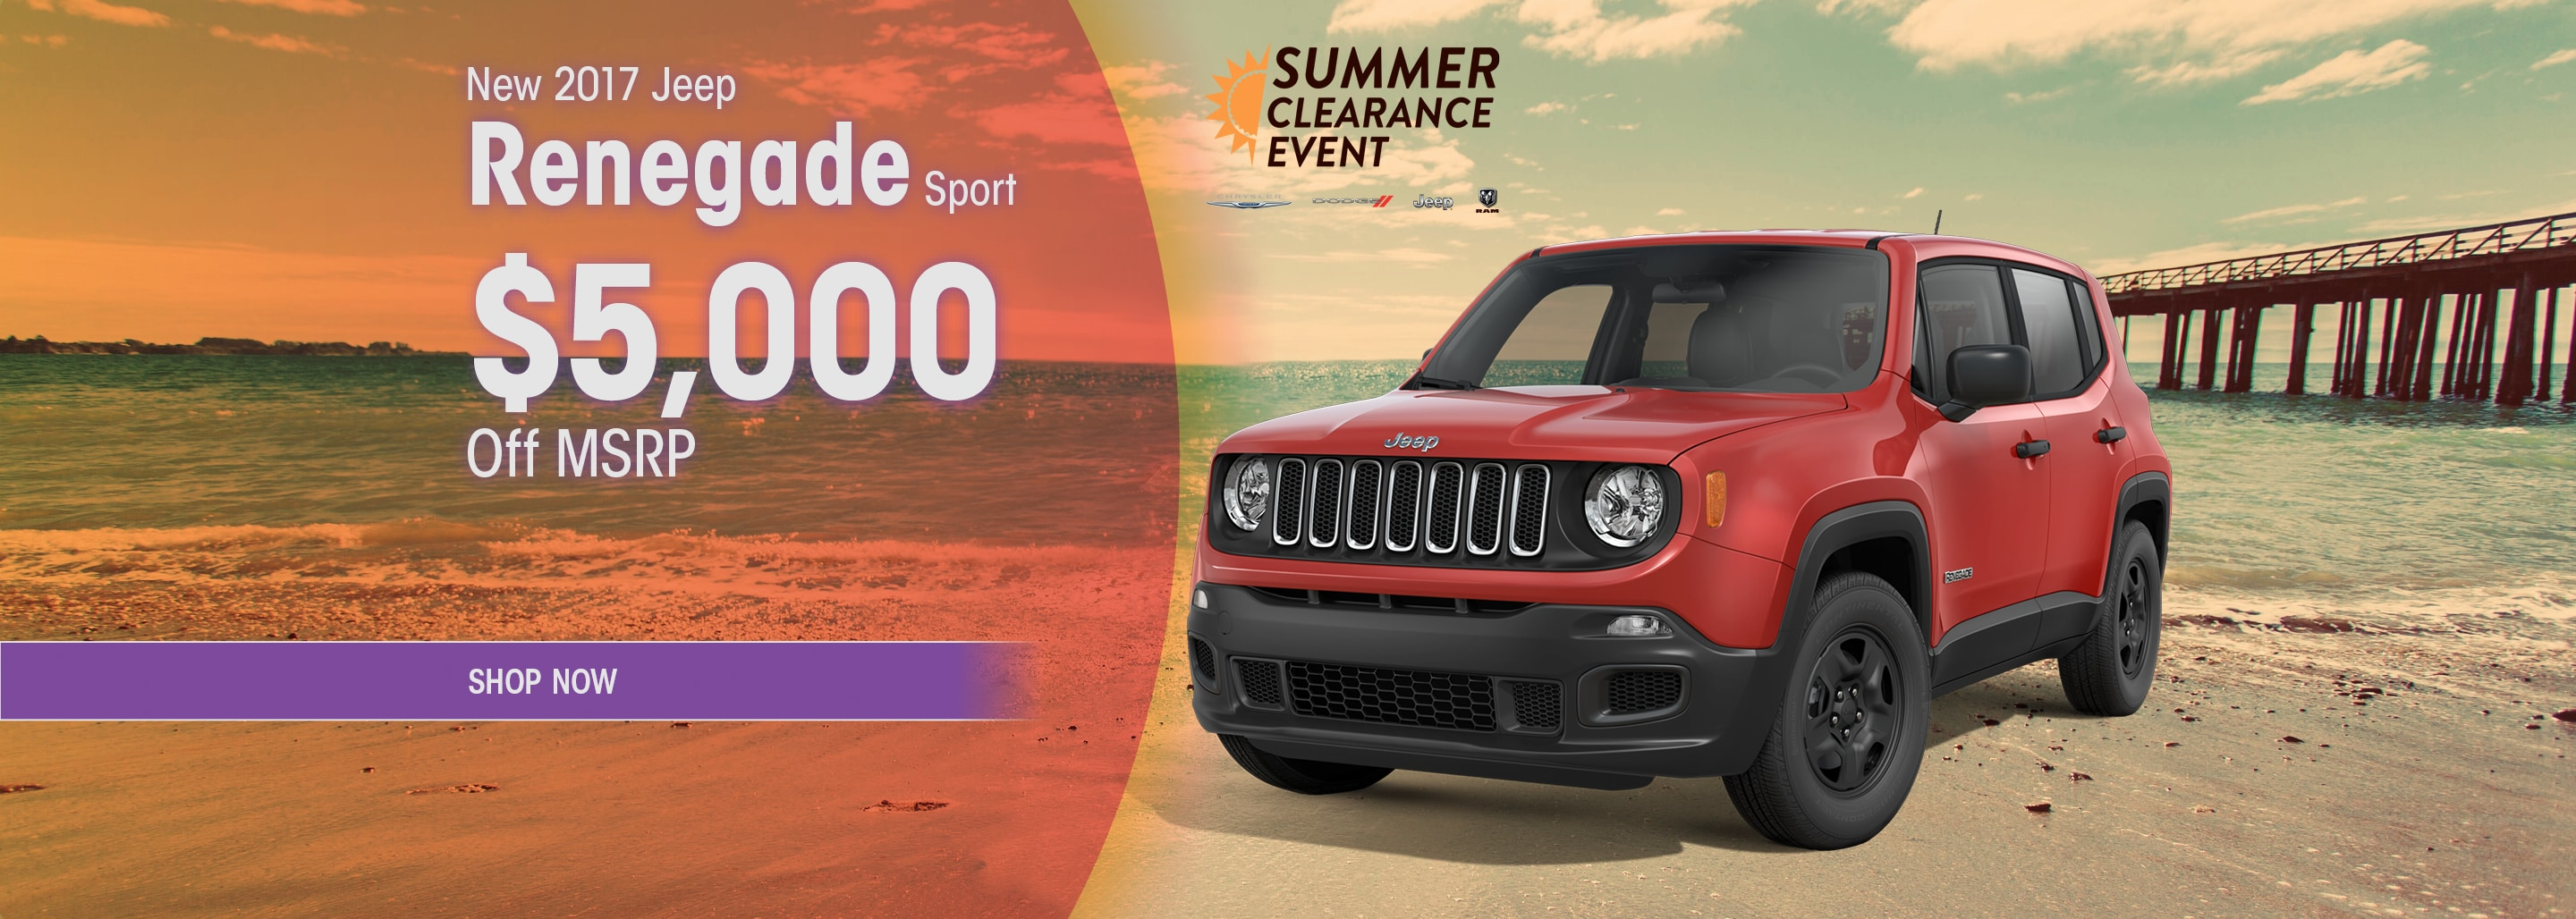 Clay Cooley Dodge >> Irving Clay Cooley Chrysler Jeep Dodge Ram | New 2017-2018 & Used Chrysler, Dodge, Jeep and RAM ...